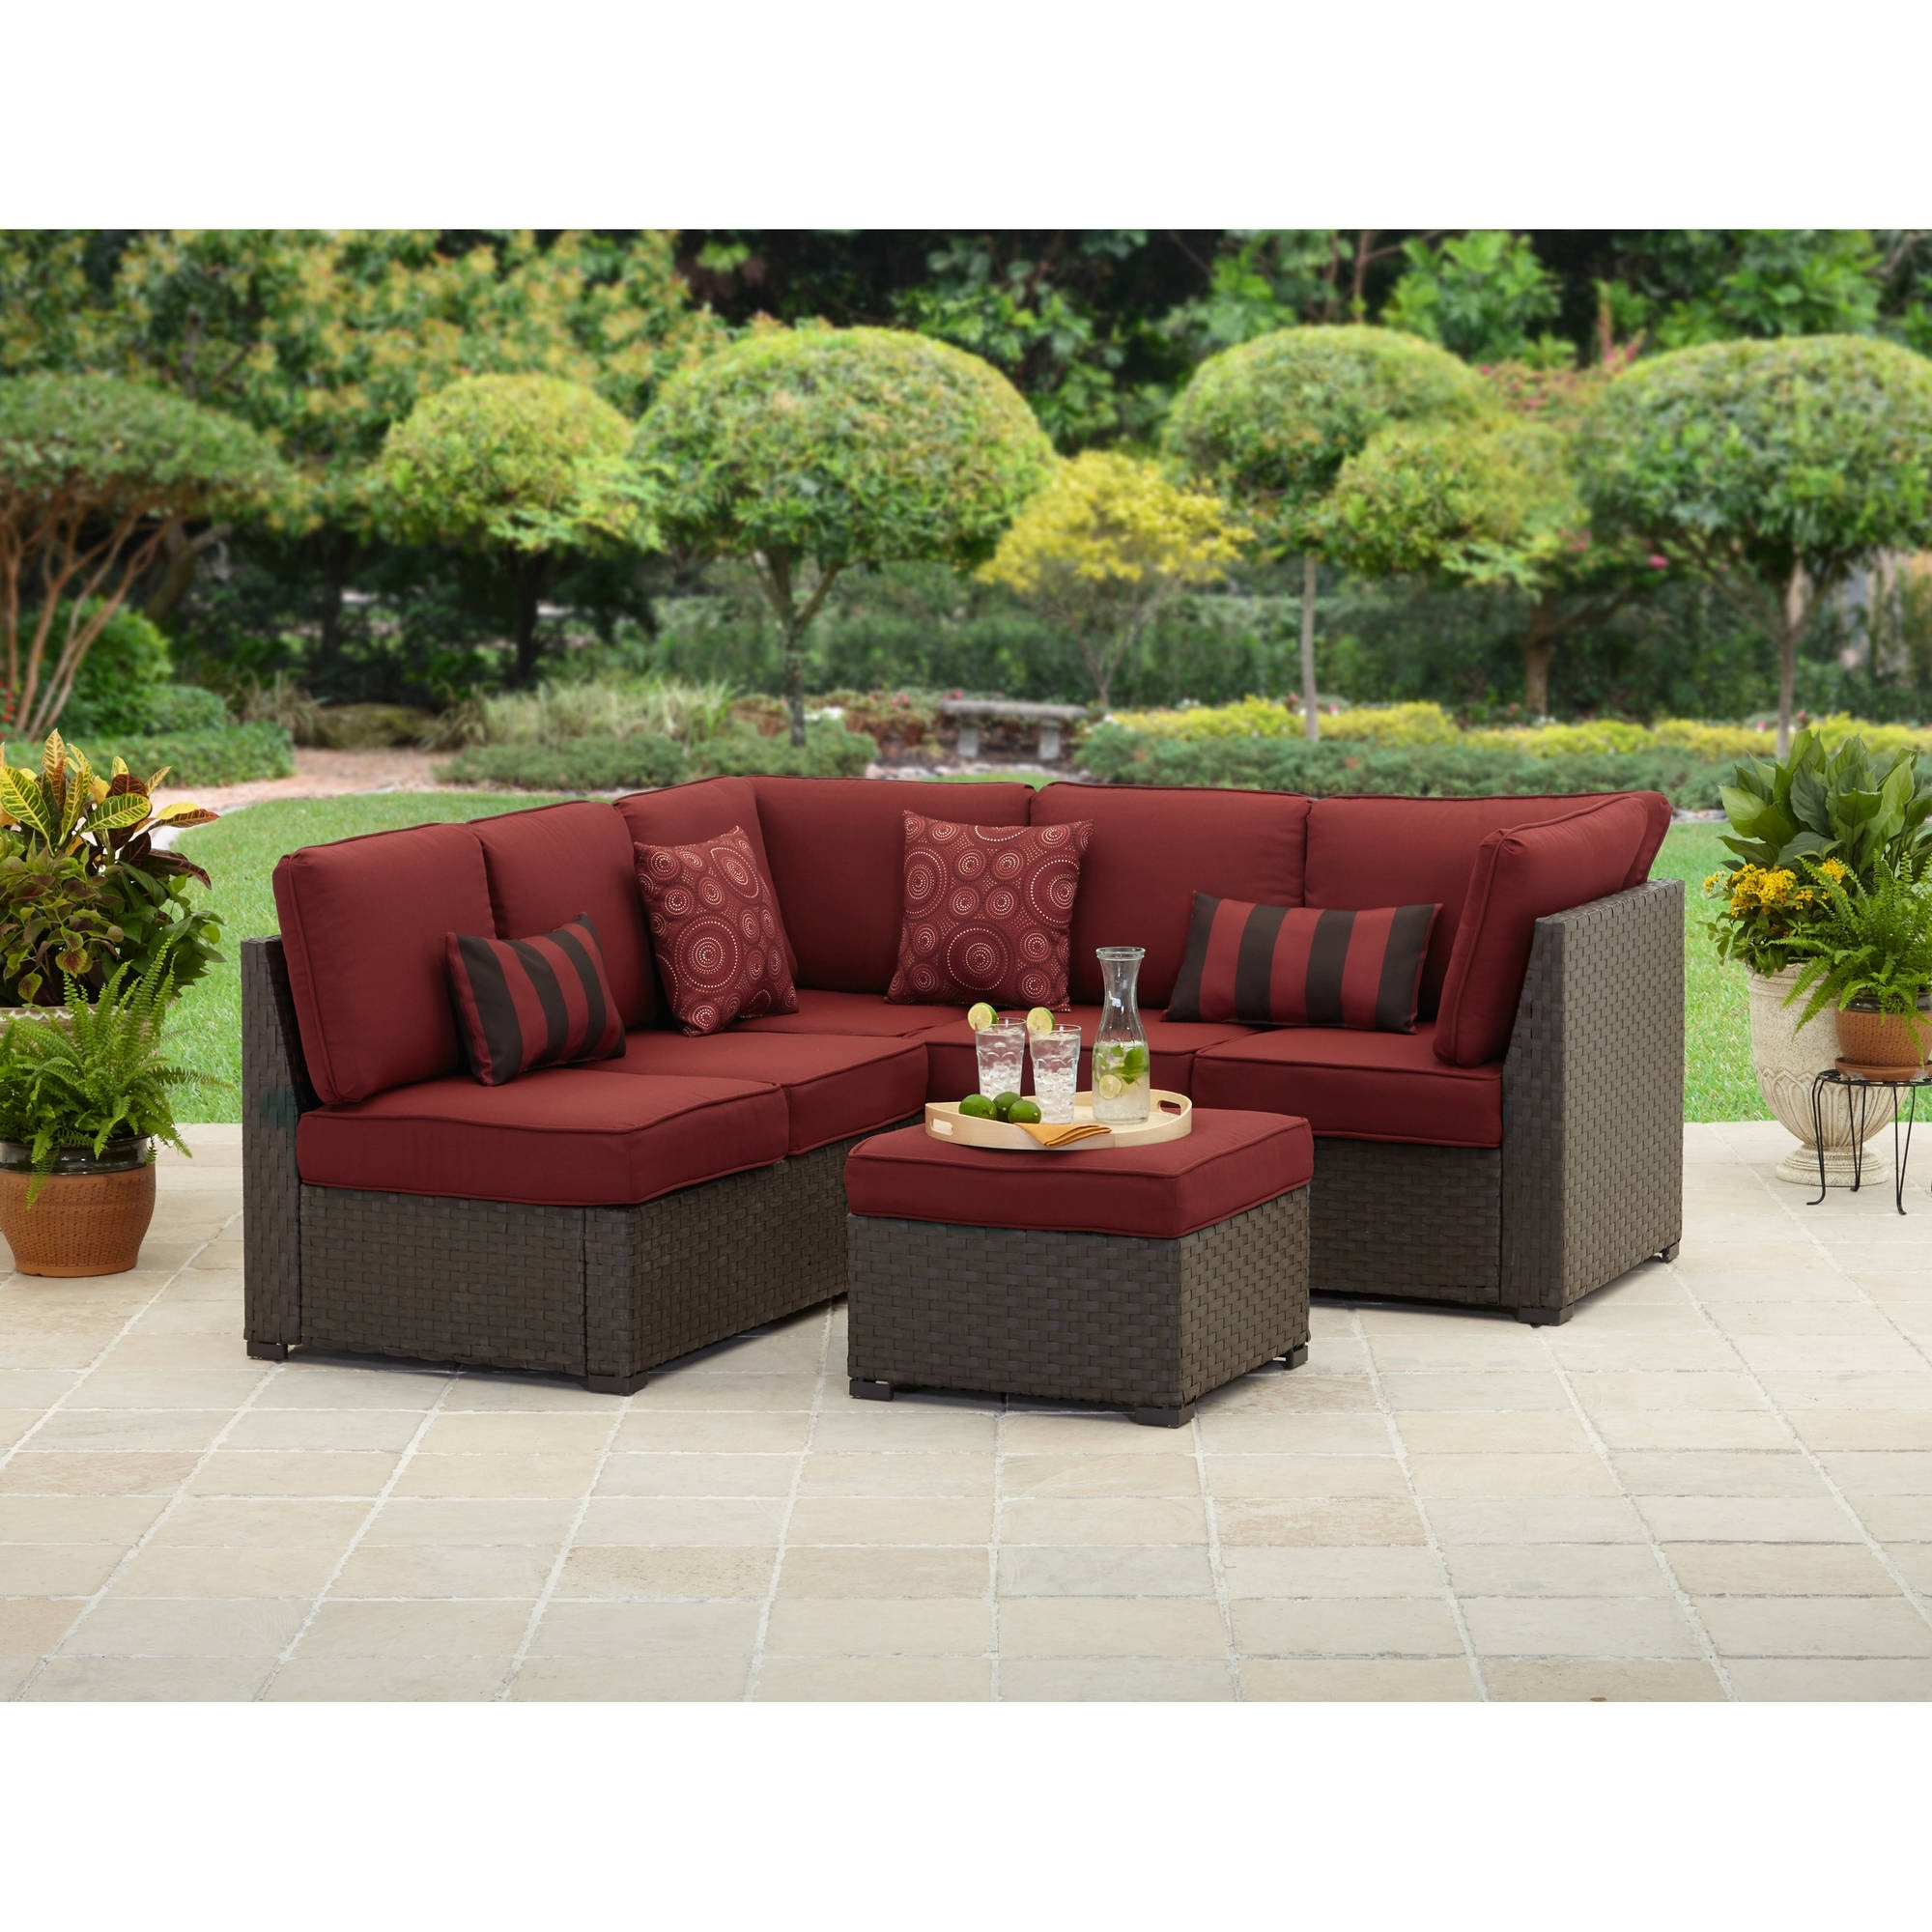 2018 Patio Conversation Sets With Ottomans With Regard To Better Homes And Gardens Rush Valley 3 Piece Outdoor Sectional (View 1 of 20)